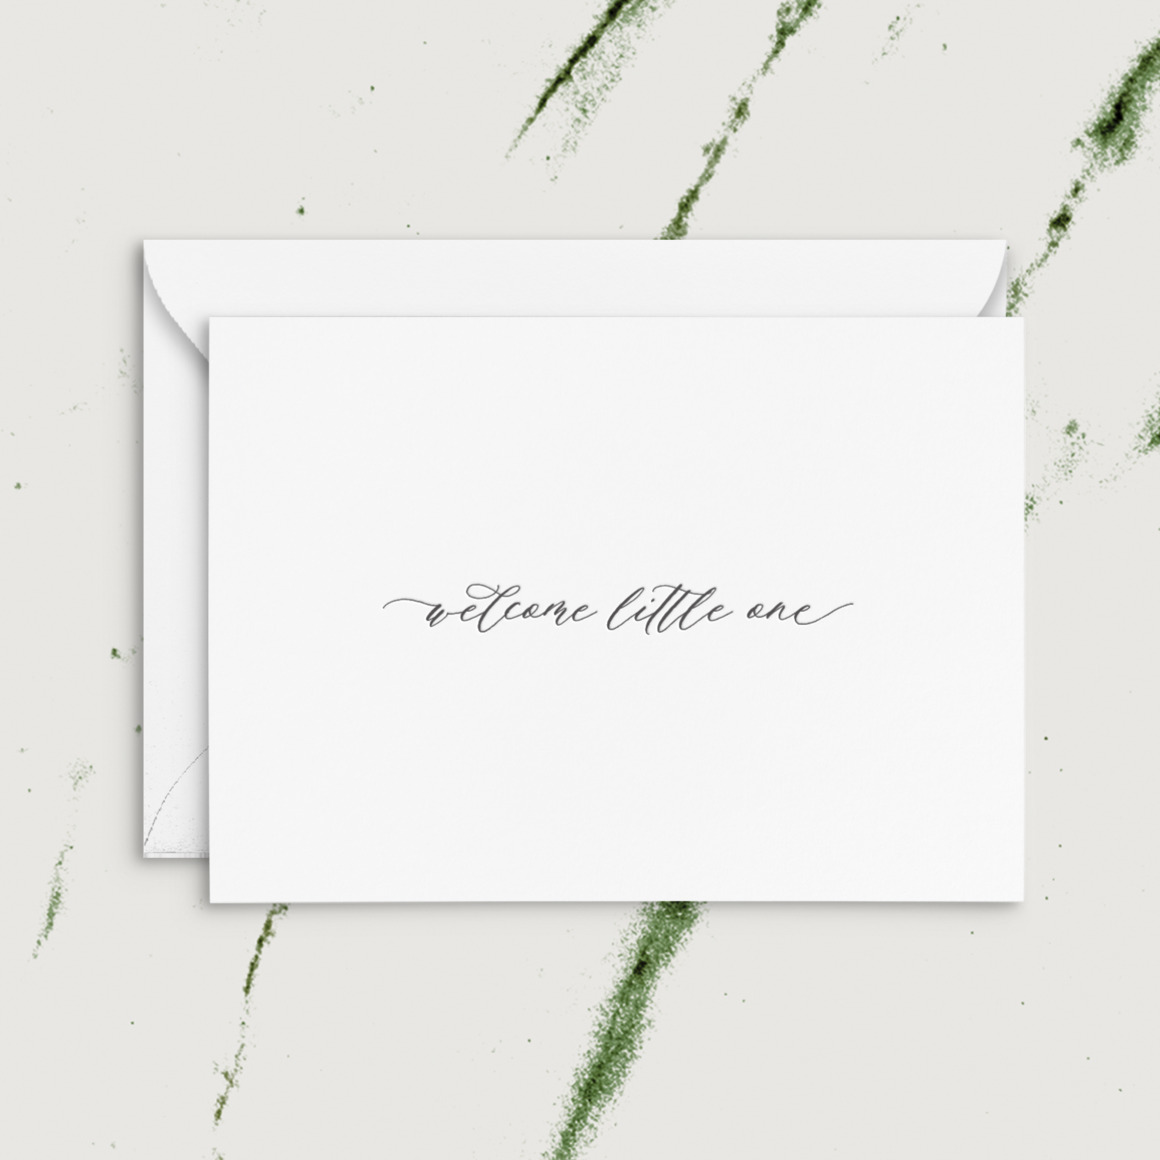 Welcome Little One   Letterpress Greeting Card   Trada Marketplace